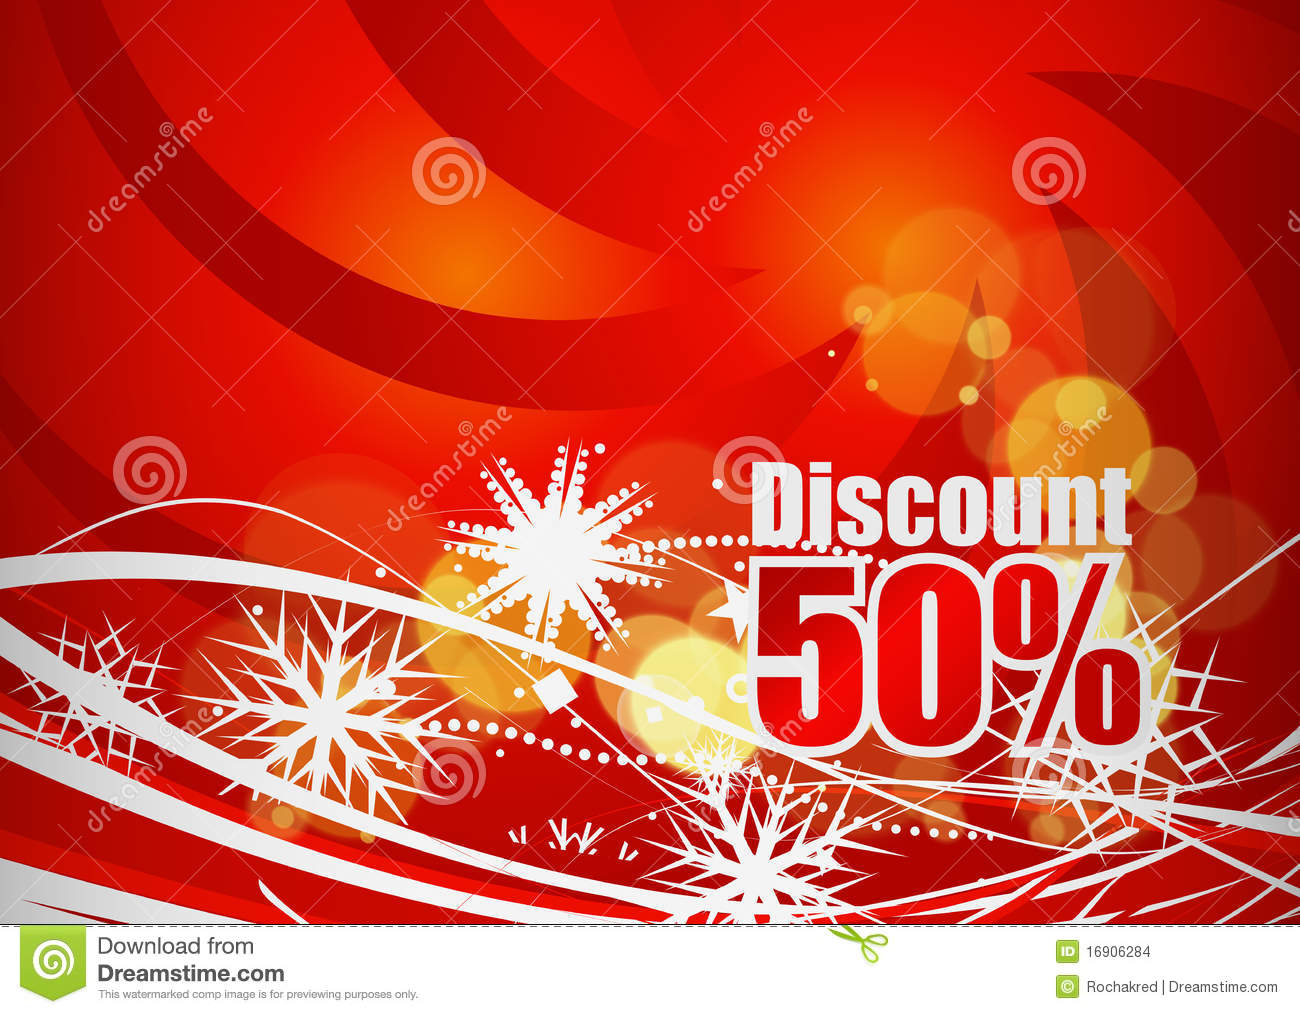 Design of discount card - Discount Card Design Stock Images